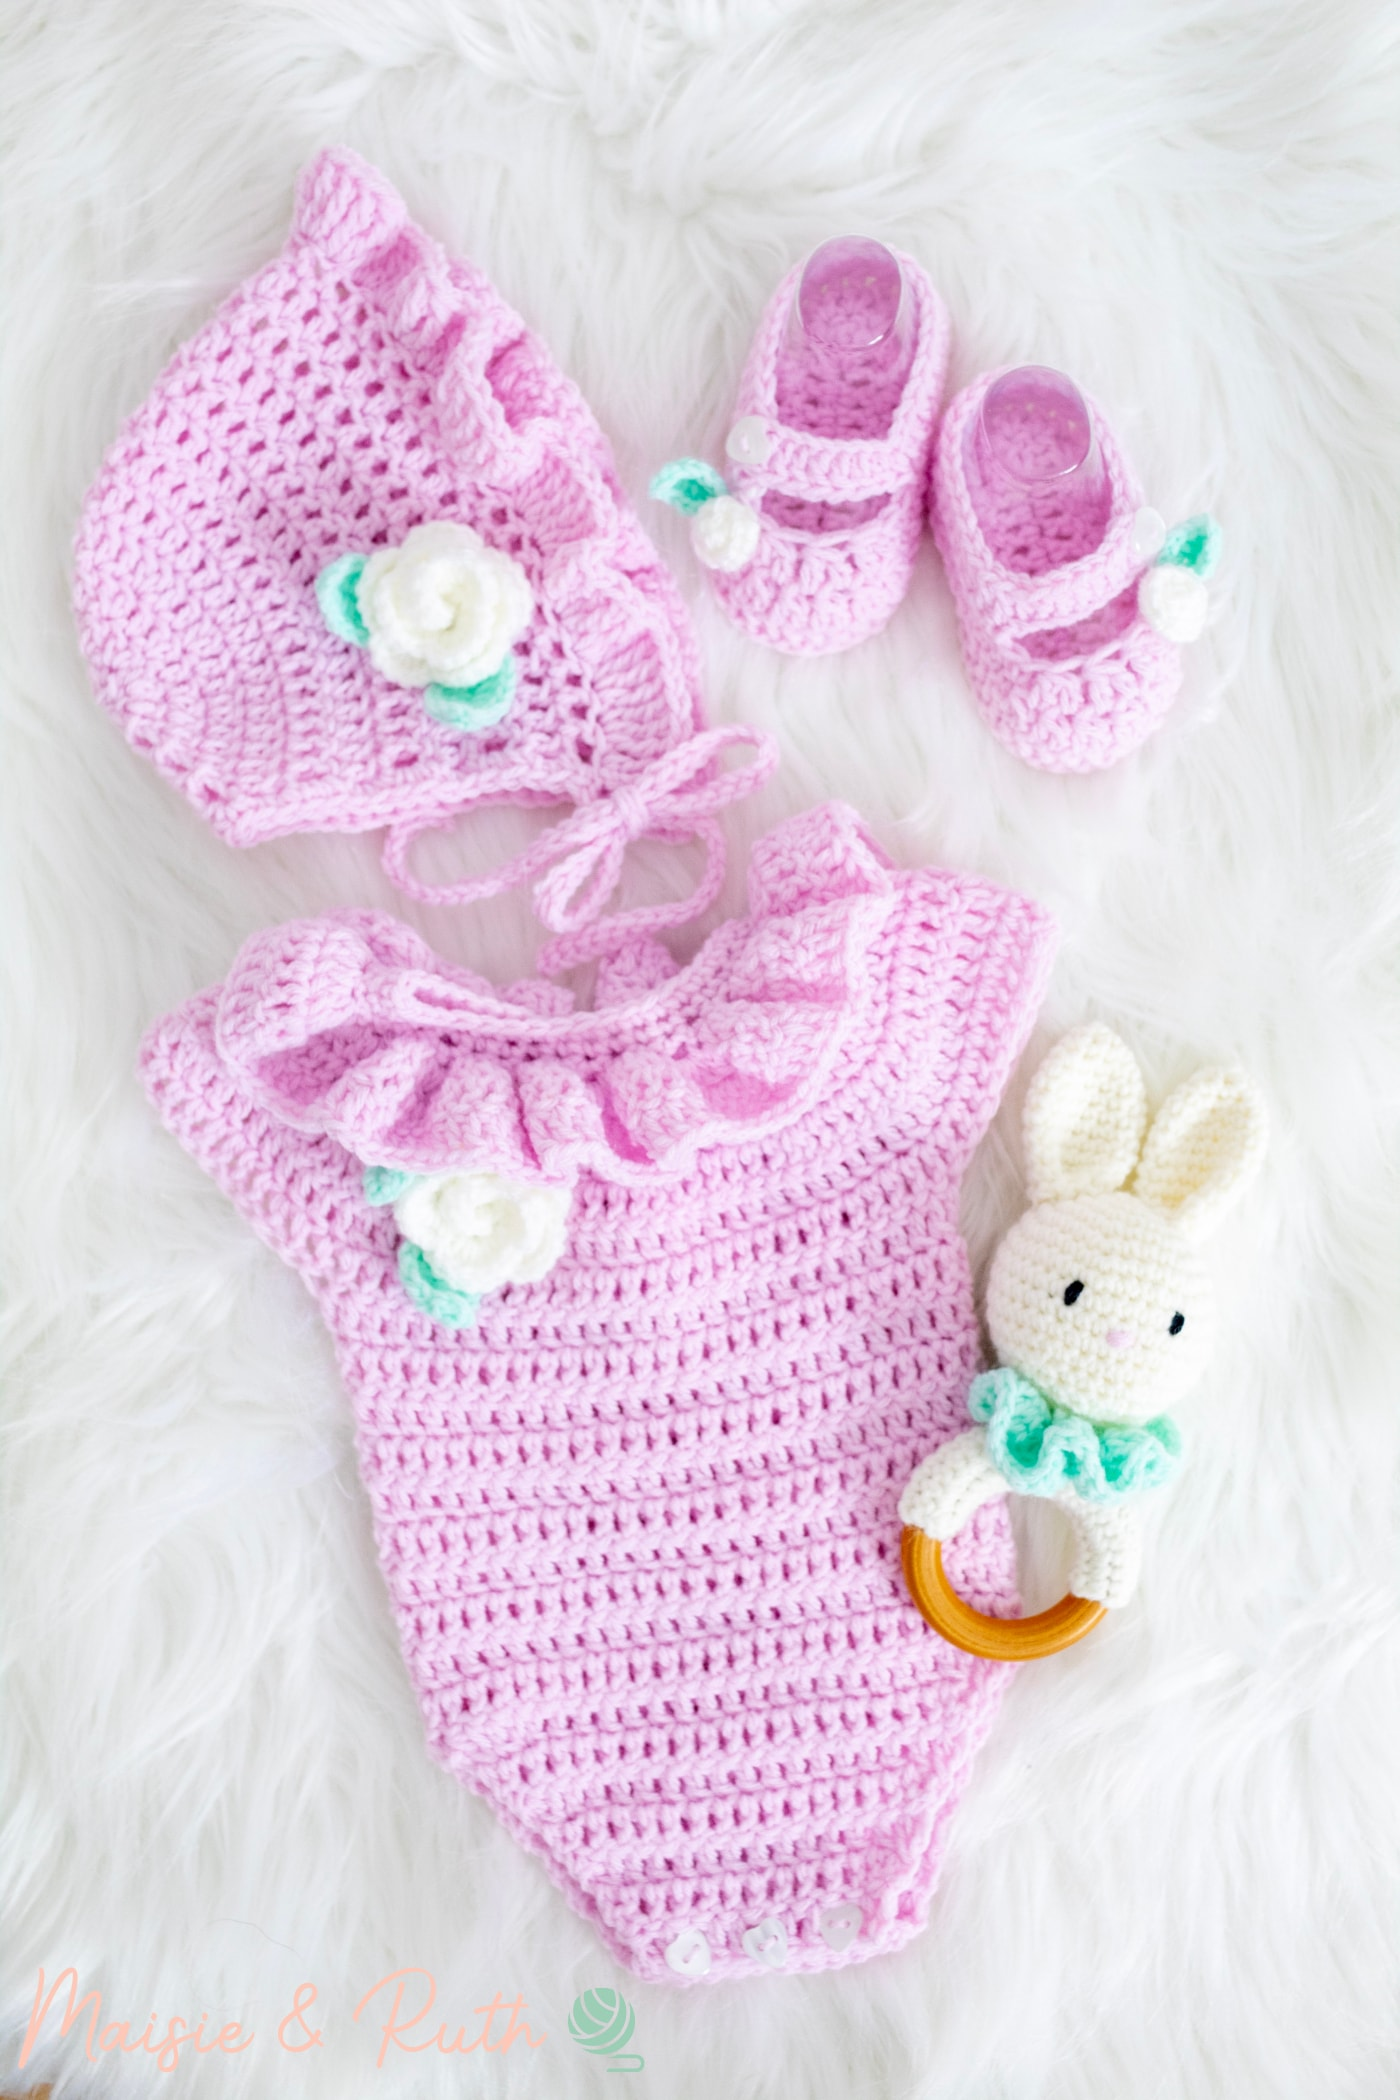 Crochet Baby Romper with other items from baby set